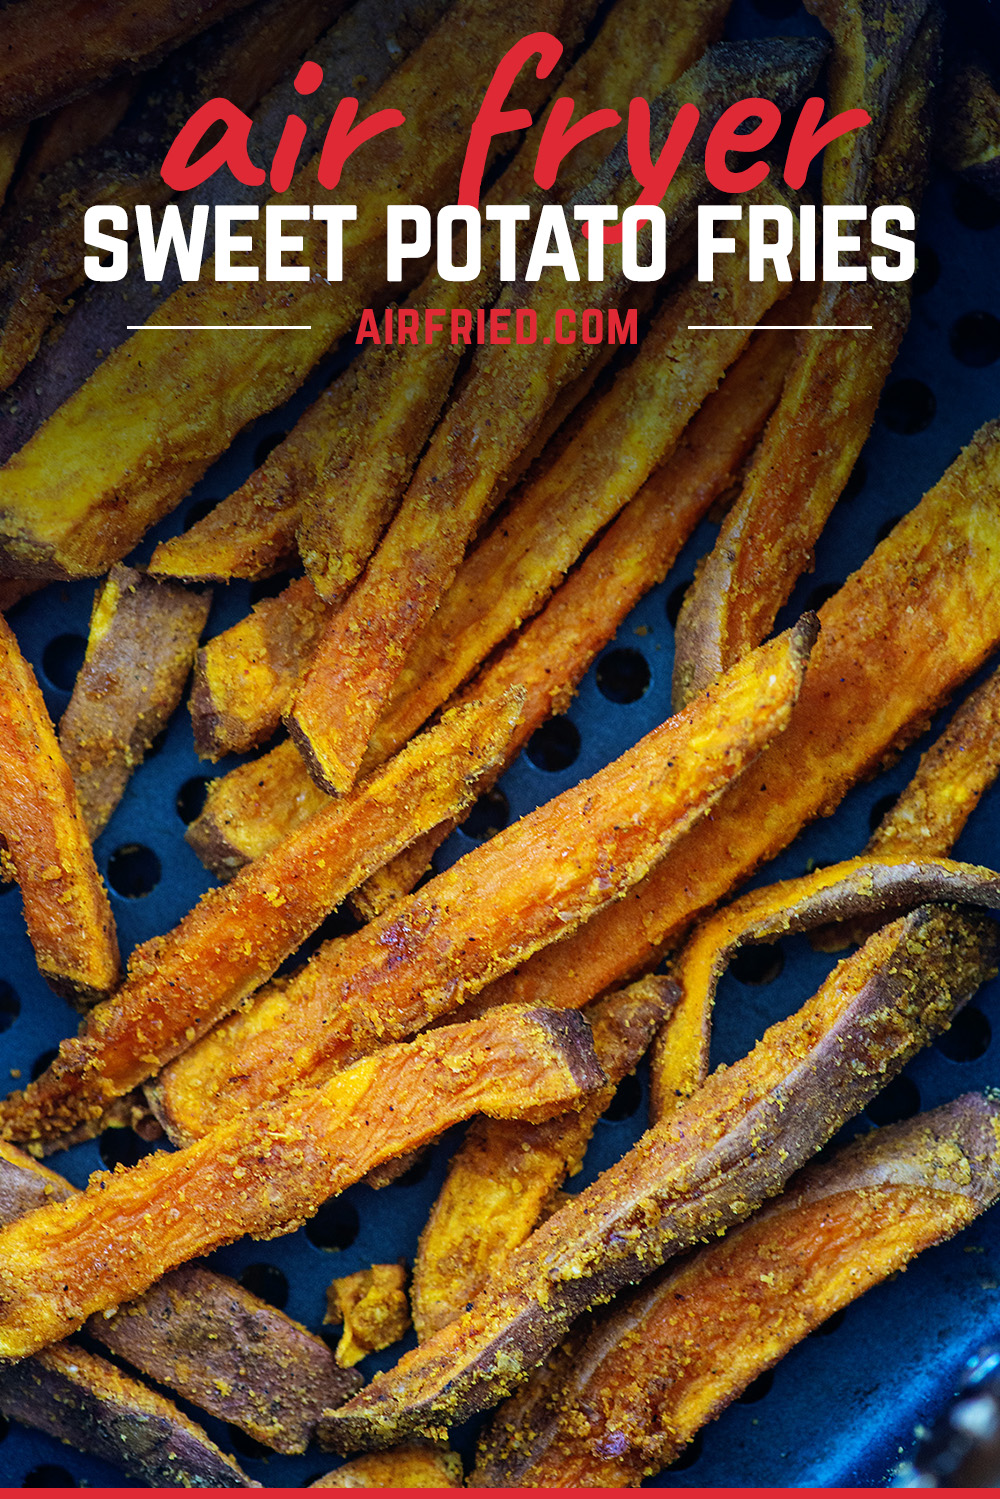 It is easy to make these spicy garlic sweet potato fries in an air fryer. #recipes #airfried #sweetpotatoes